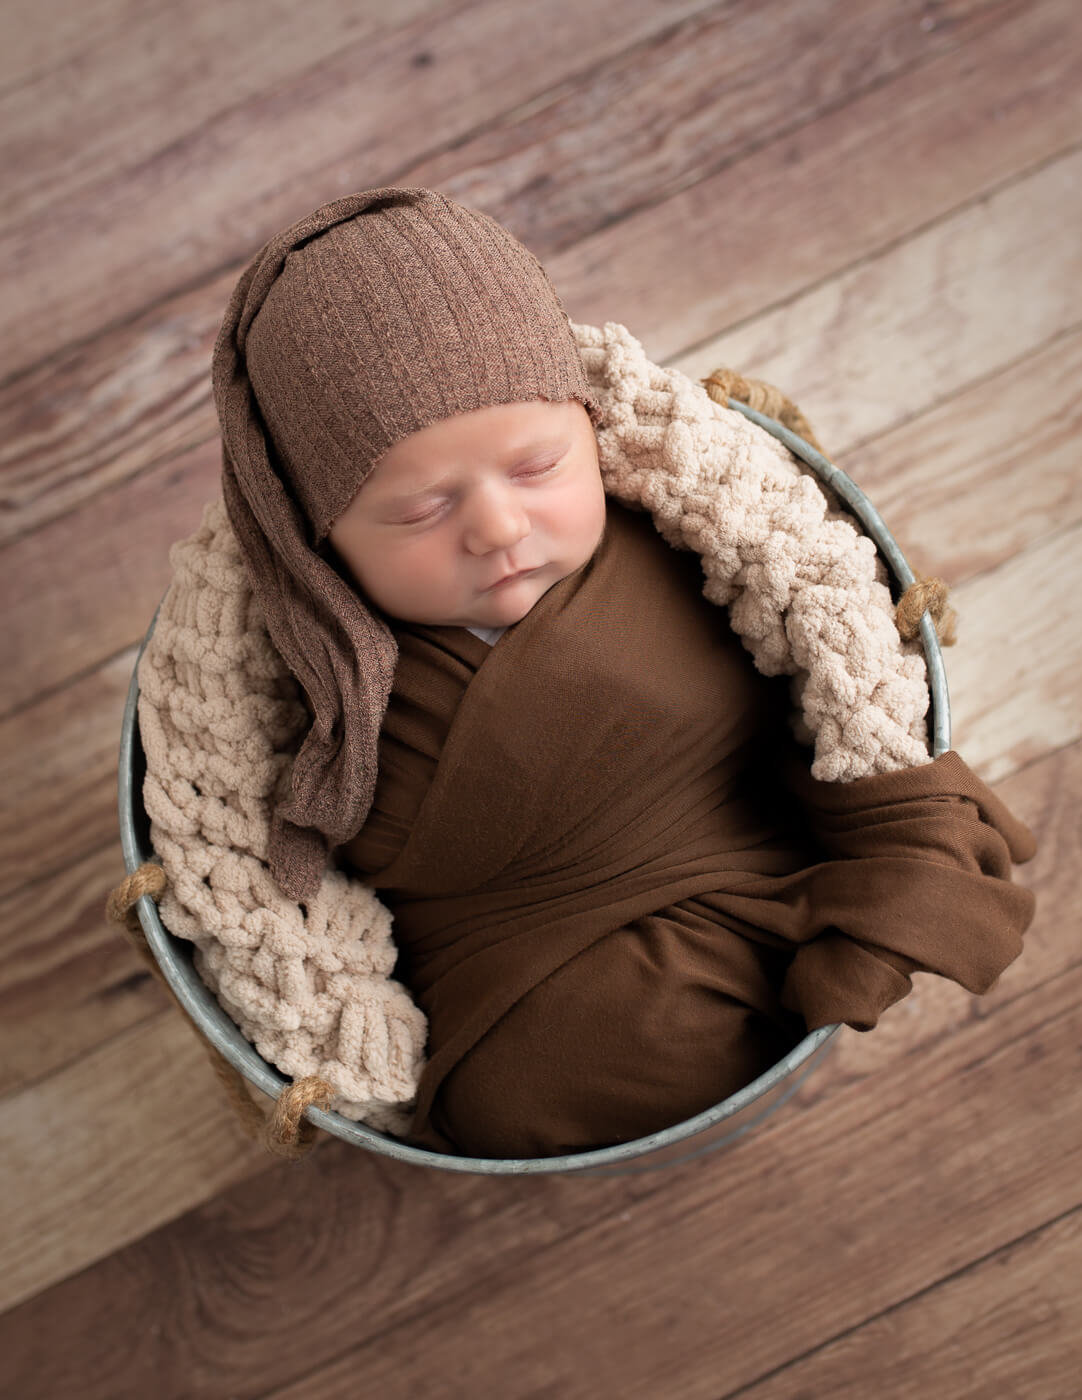 Precious newborn posed in a metal bucket in our studio in Rochester, NY.